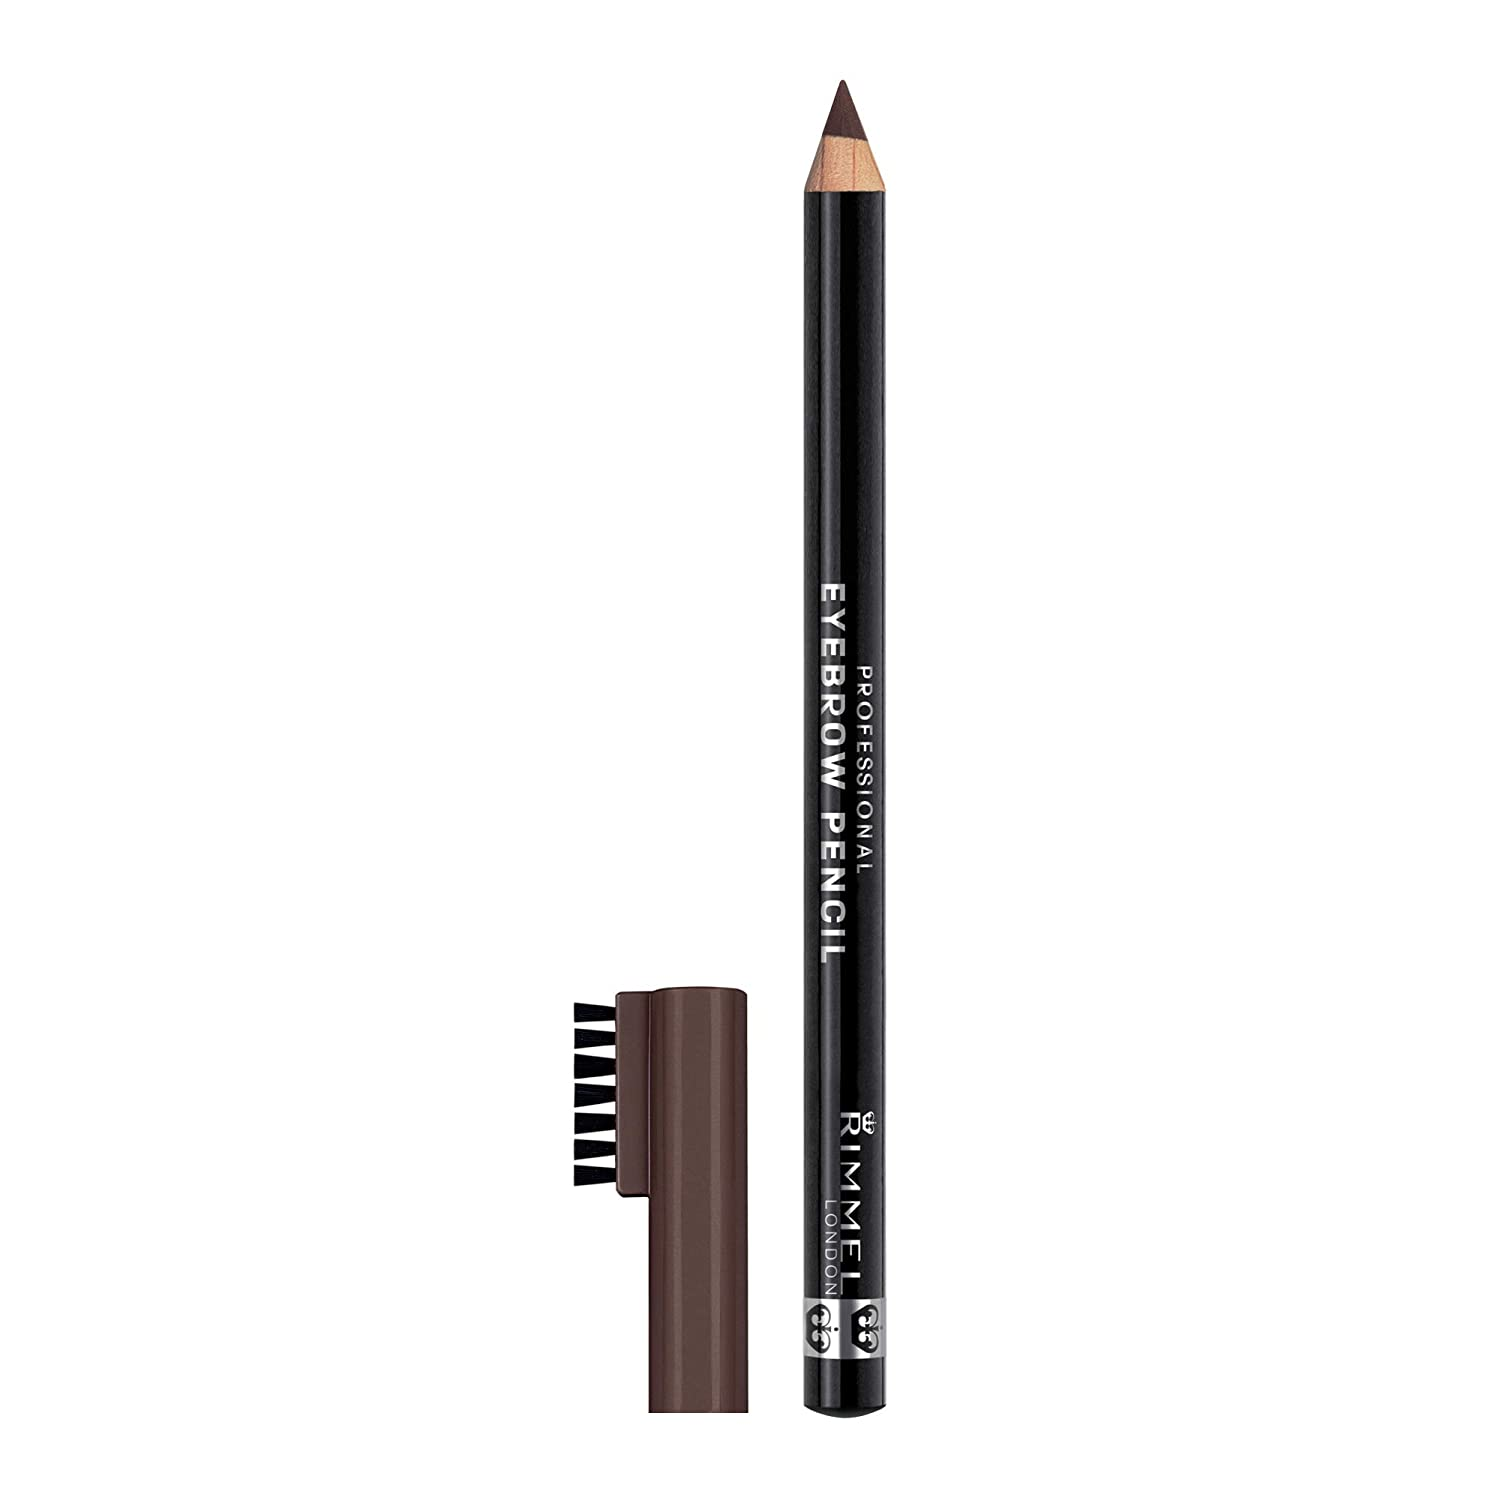 Rimmel London Professional Eye Brow Pencil